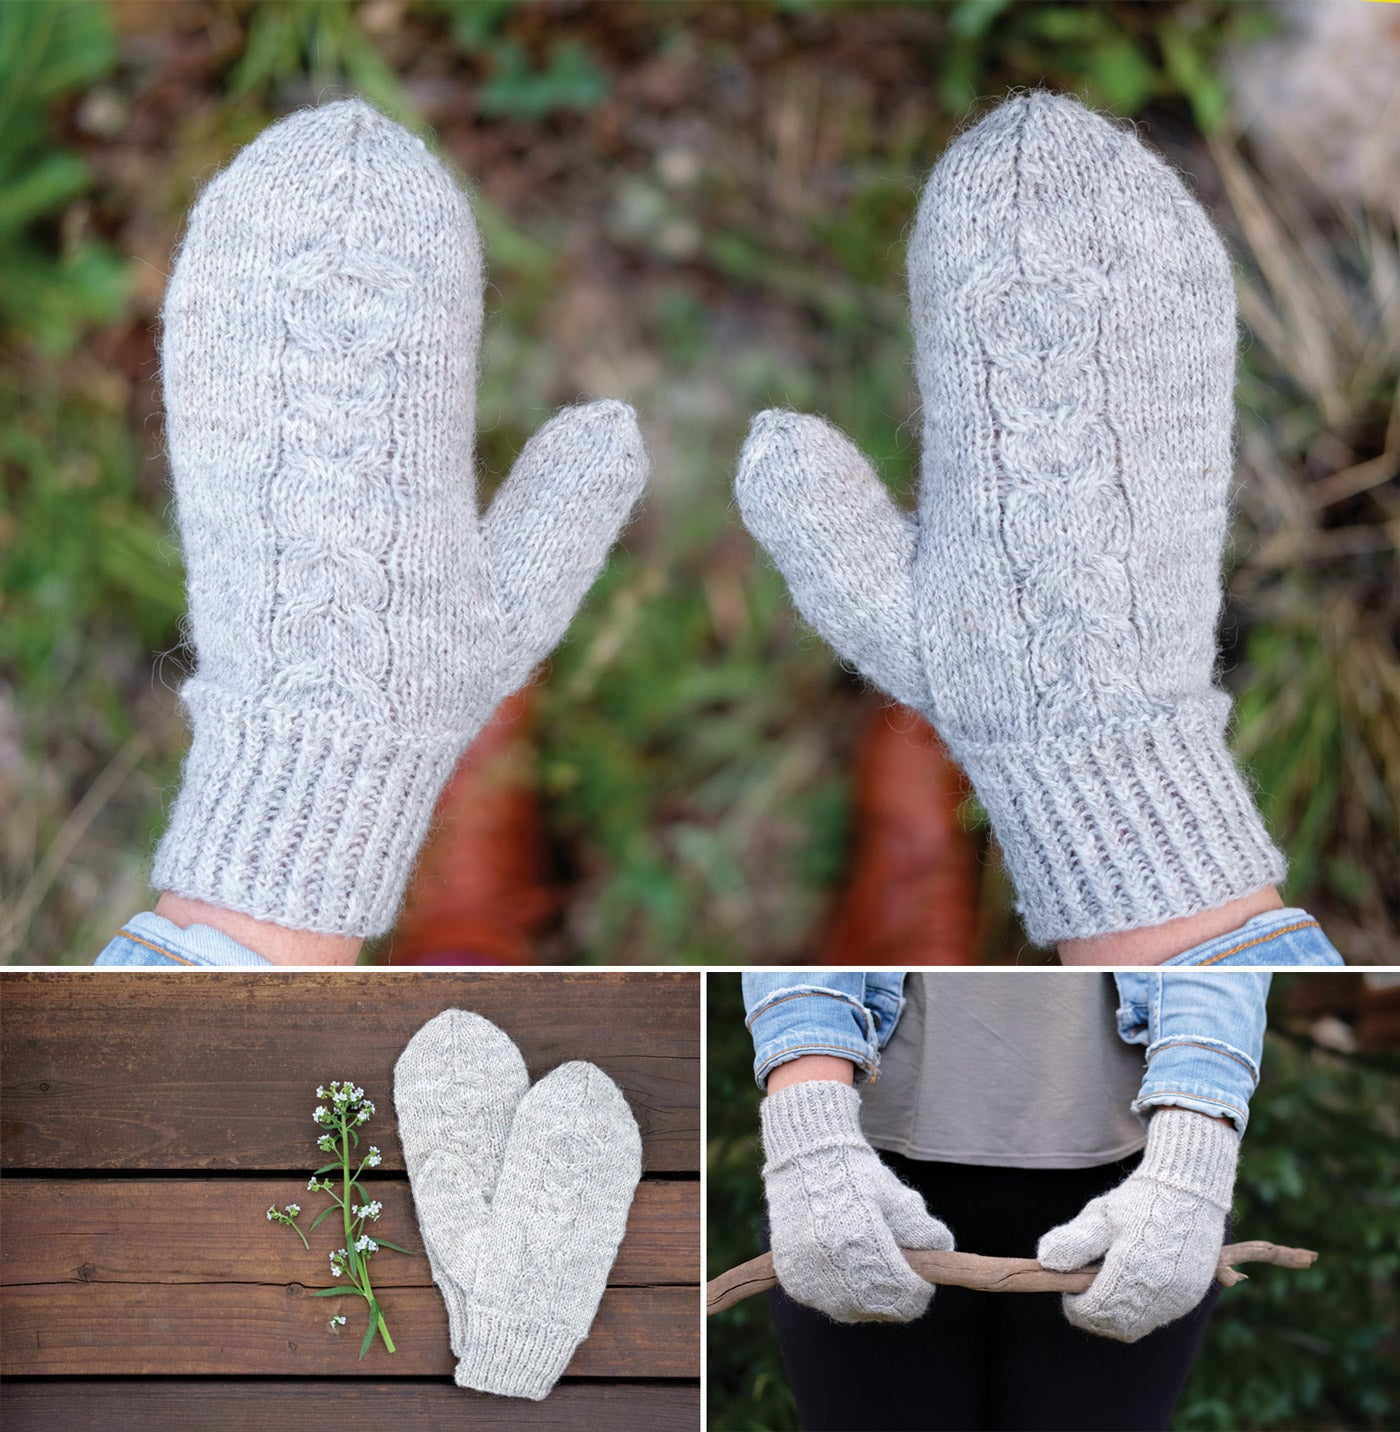 Friolero Mittens by Rae Gronmark for Yarn Along the Rockies 2018